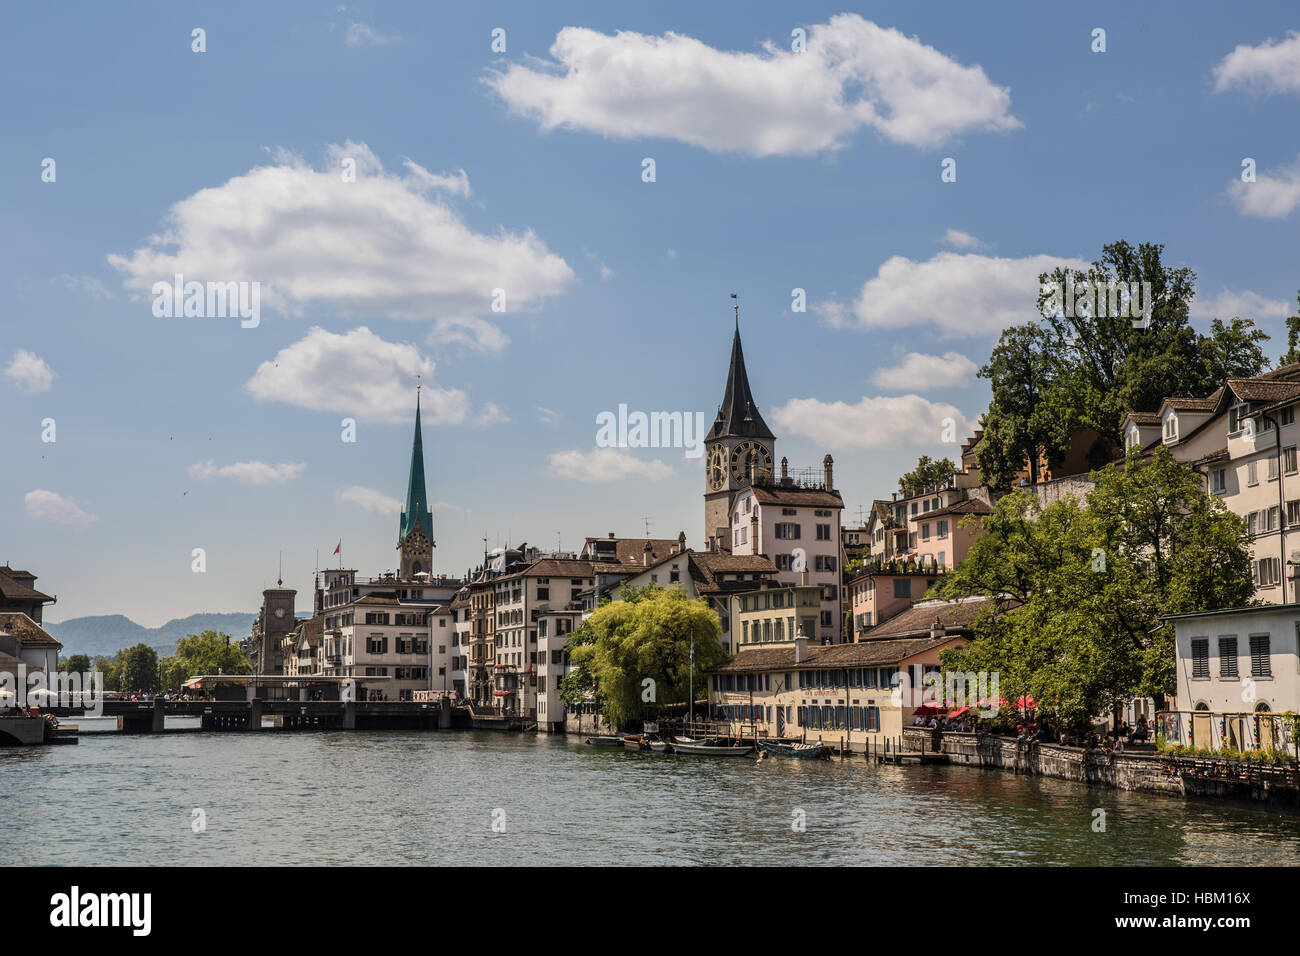 Limmat river and famous Zurich churches - Stock Image